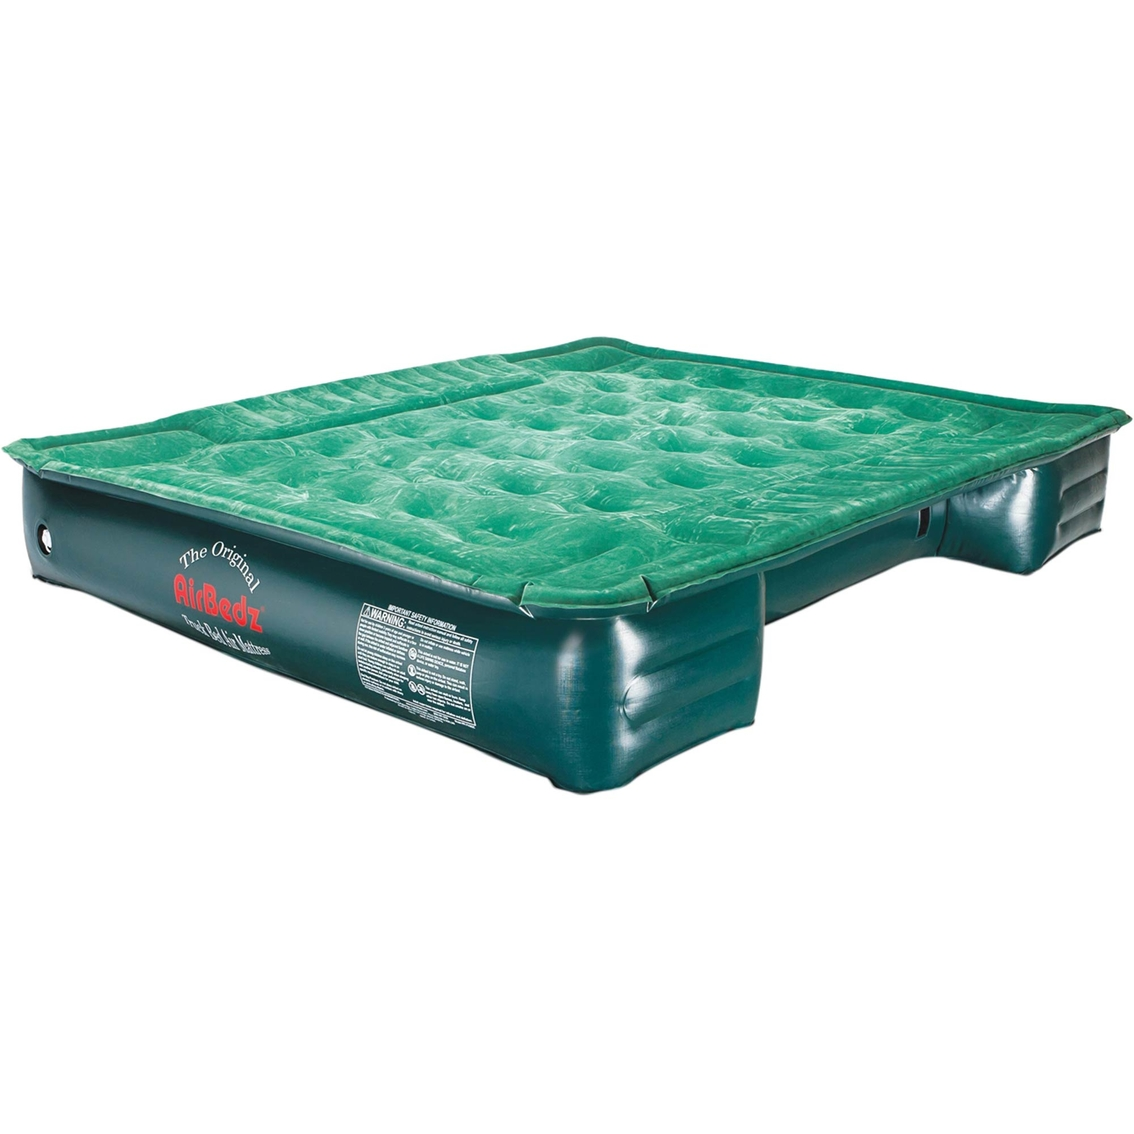 Airbedz Lite Full Size 6-8 Ft. Truck Bed Air Mattress With ...